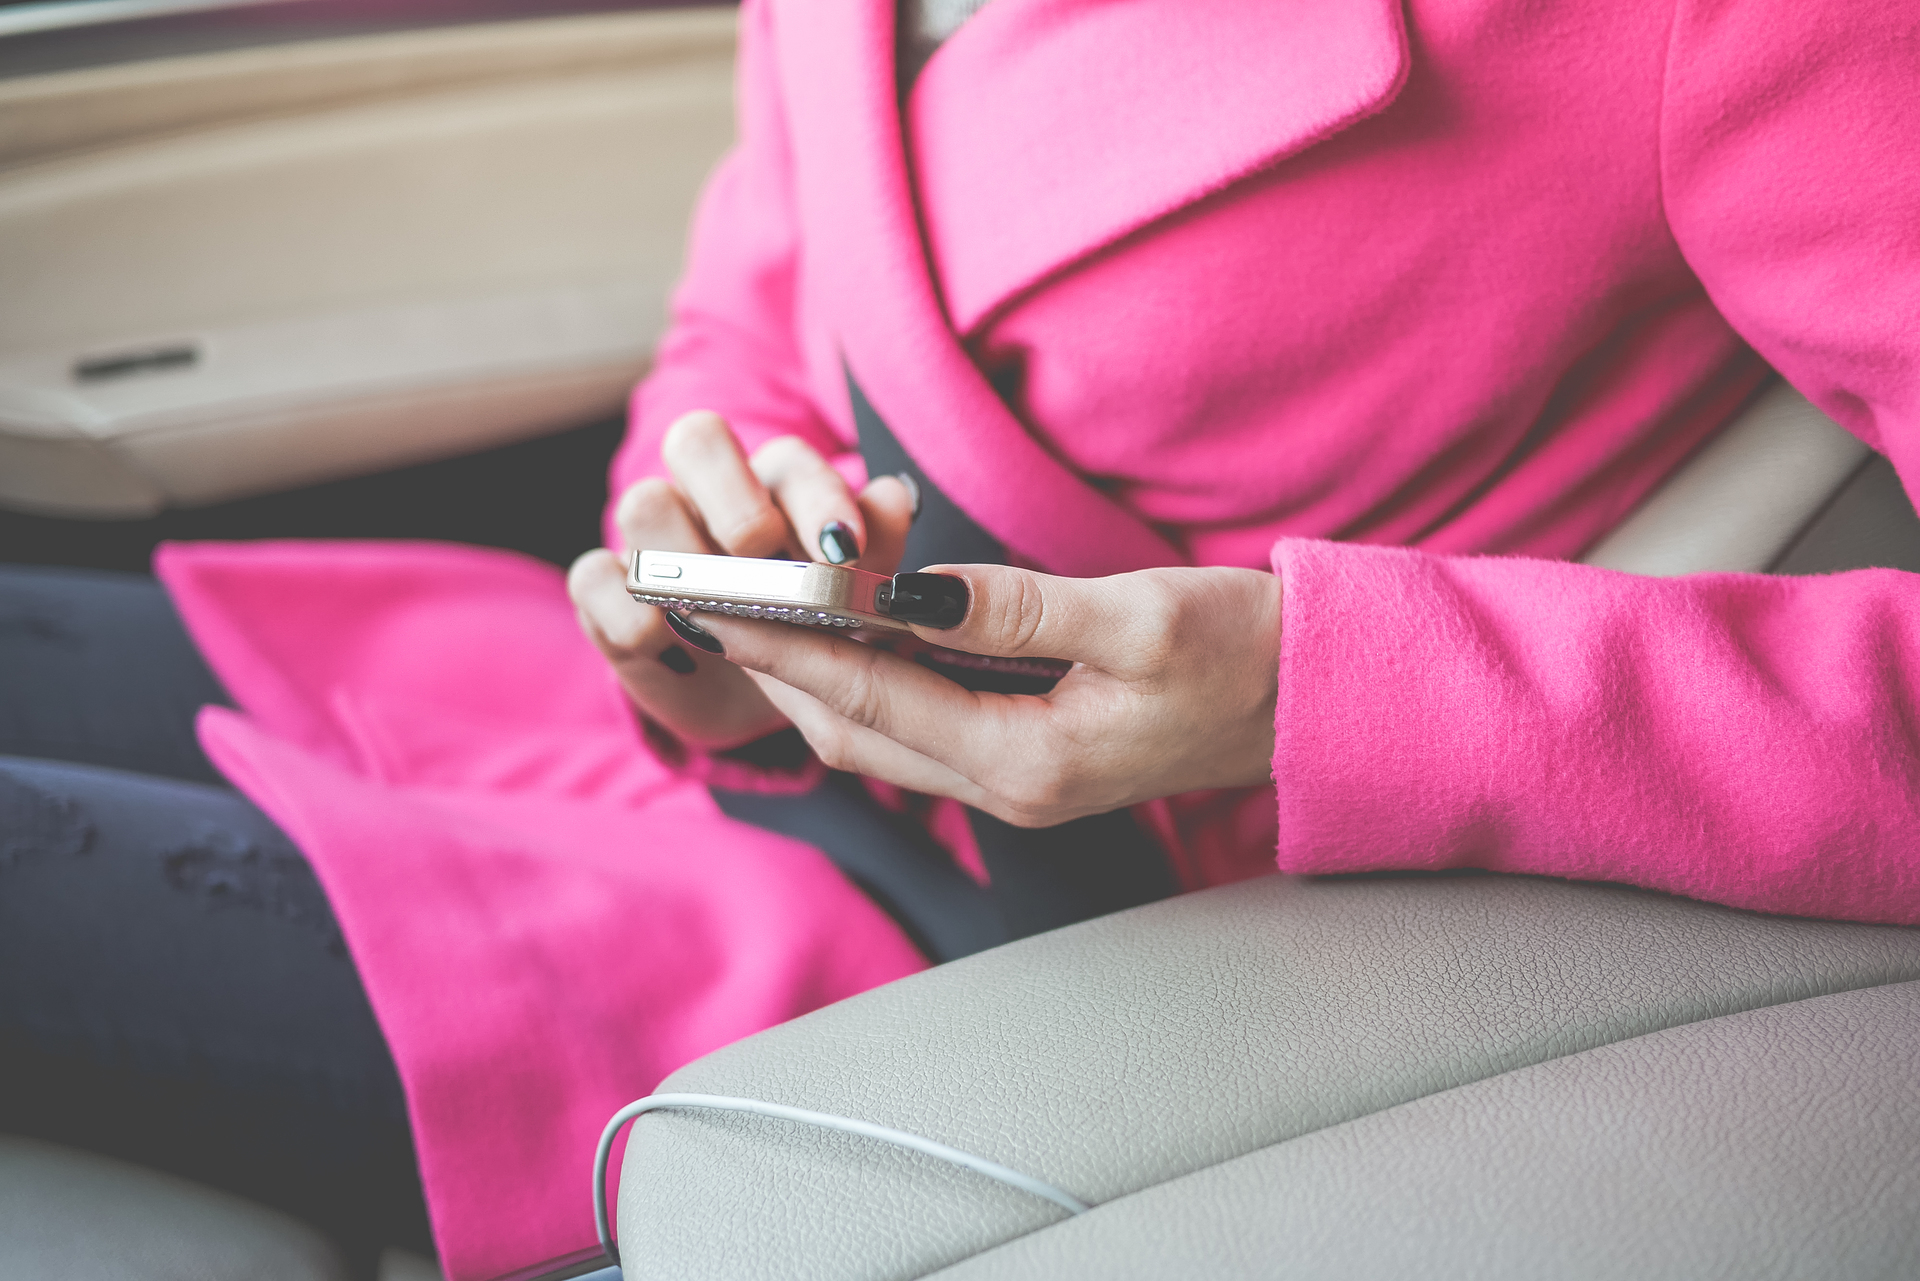 nicely-dressed-woman-using-her-phone-in-a-car-picjumbo-com.jpg